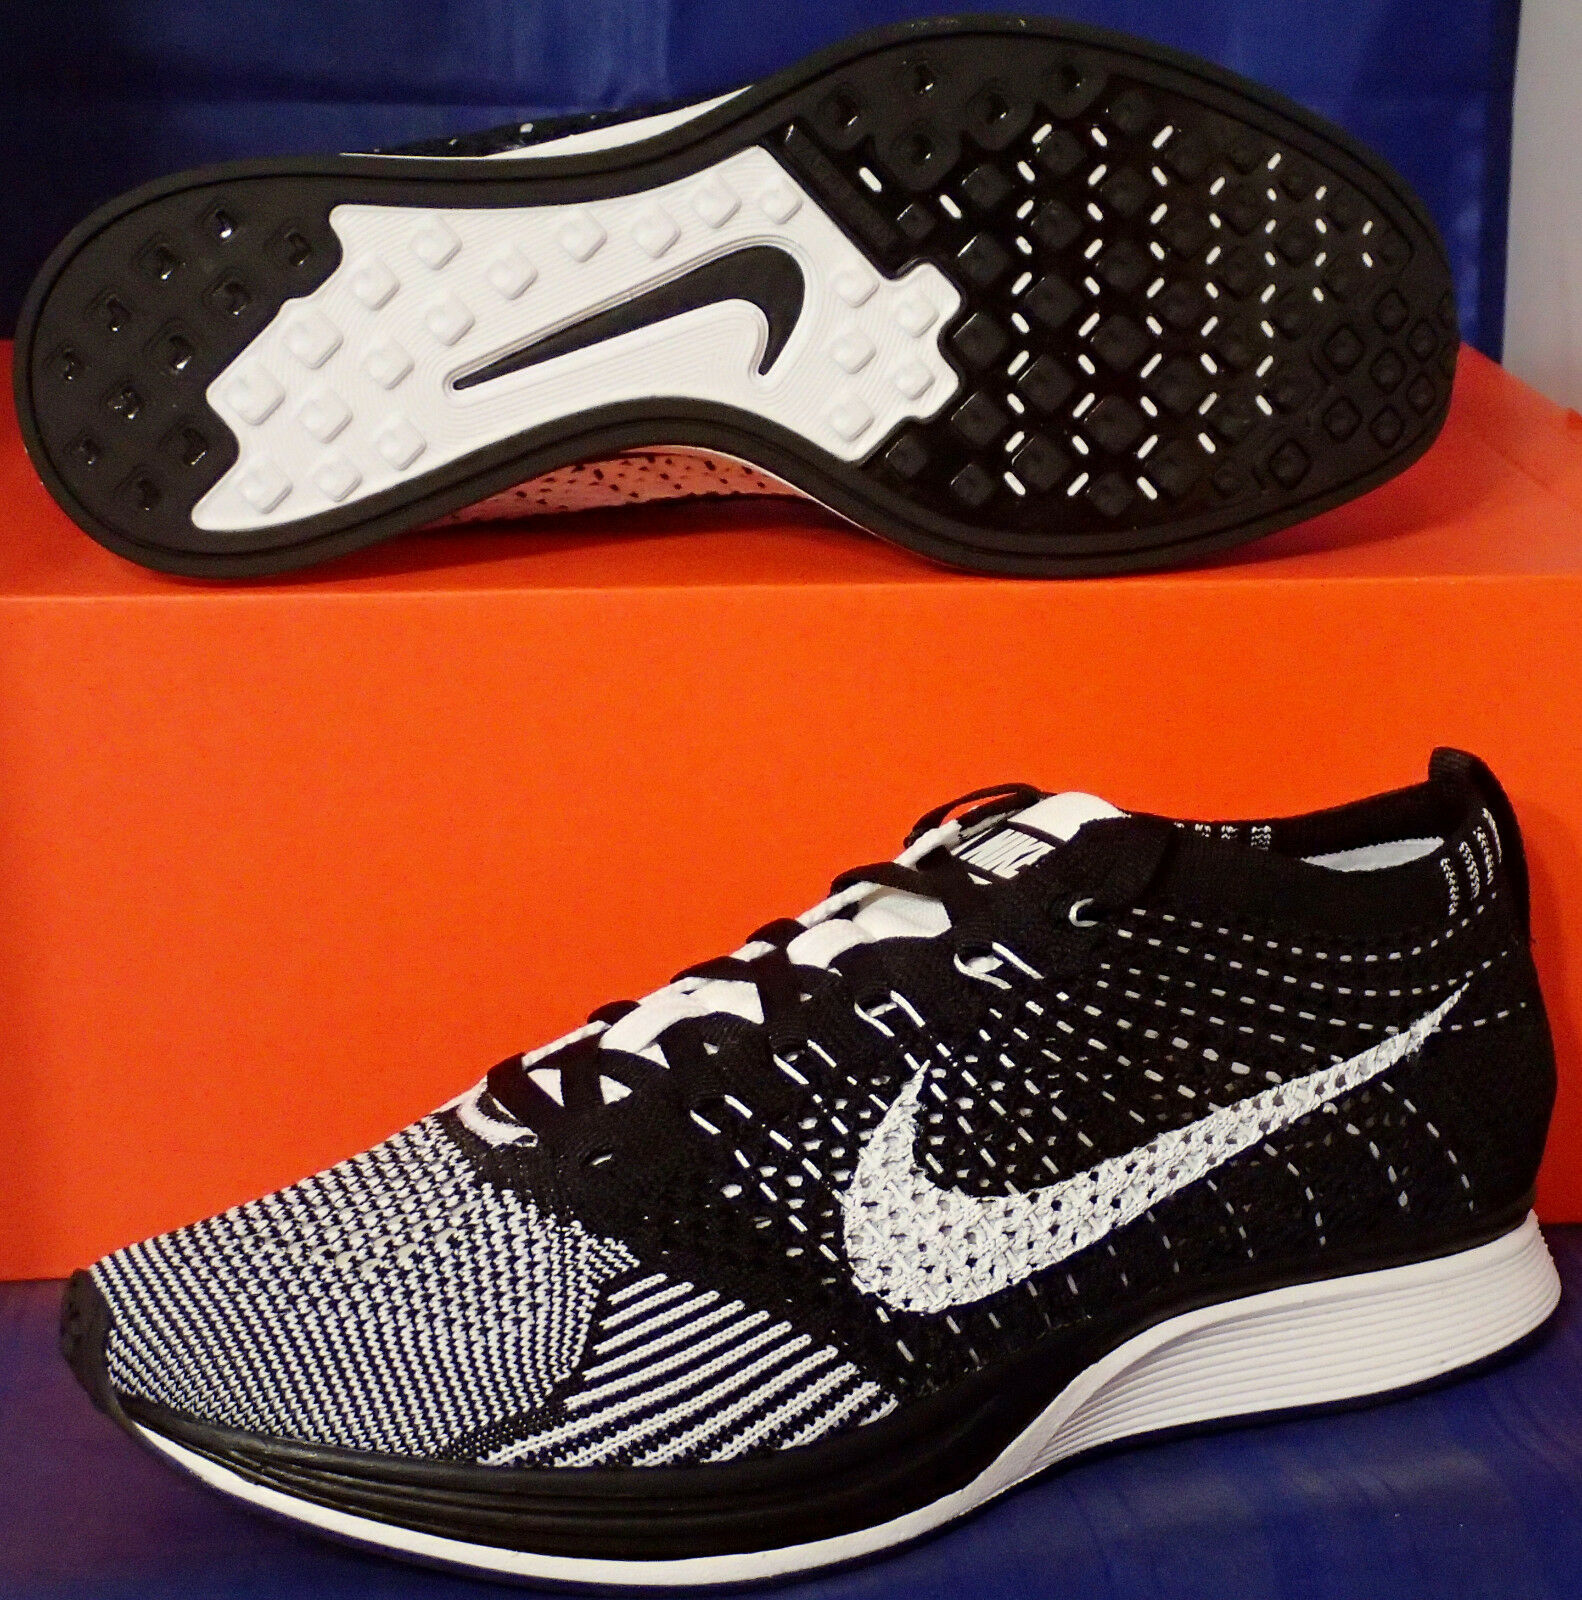 2018 Nike Flyknit Racer Black White Price reduction The latest discount shoes for men and women